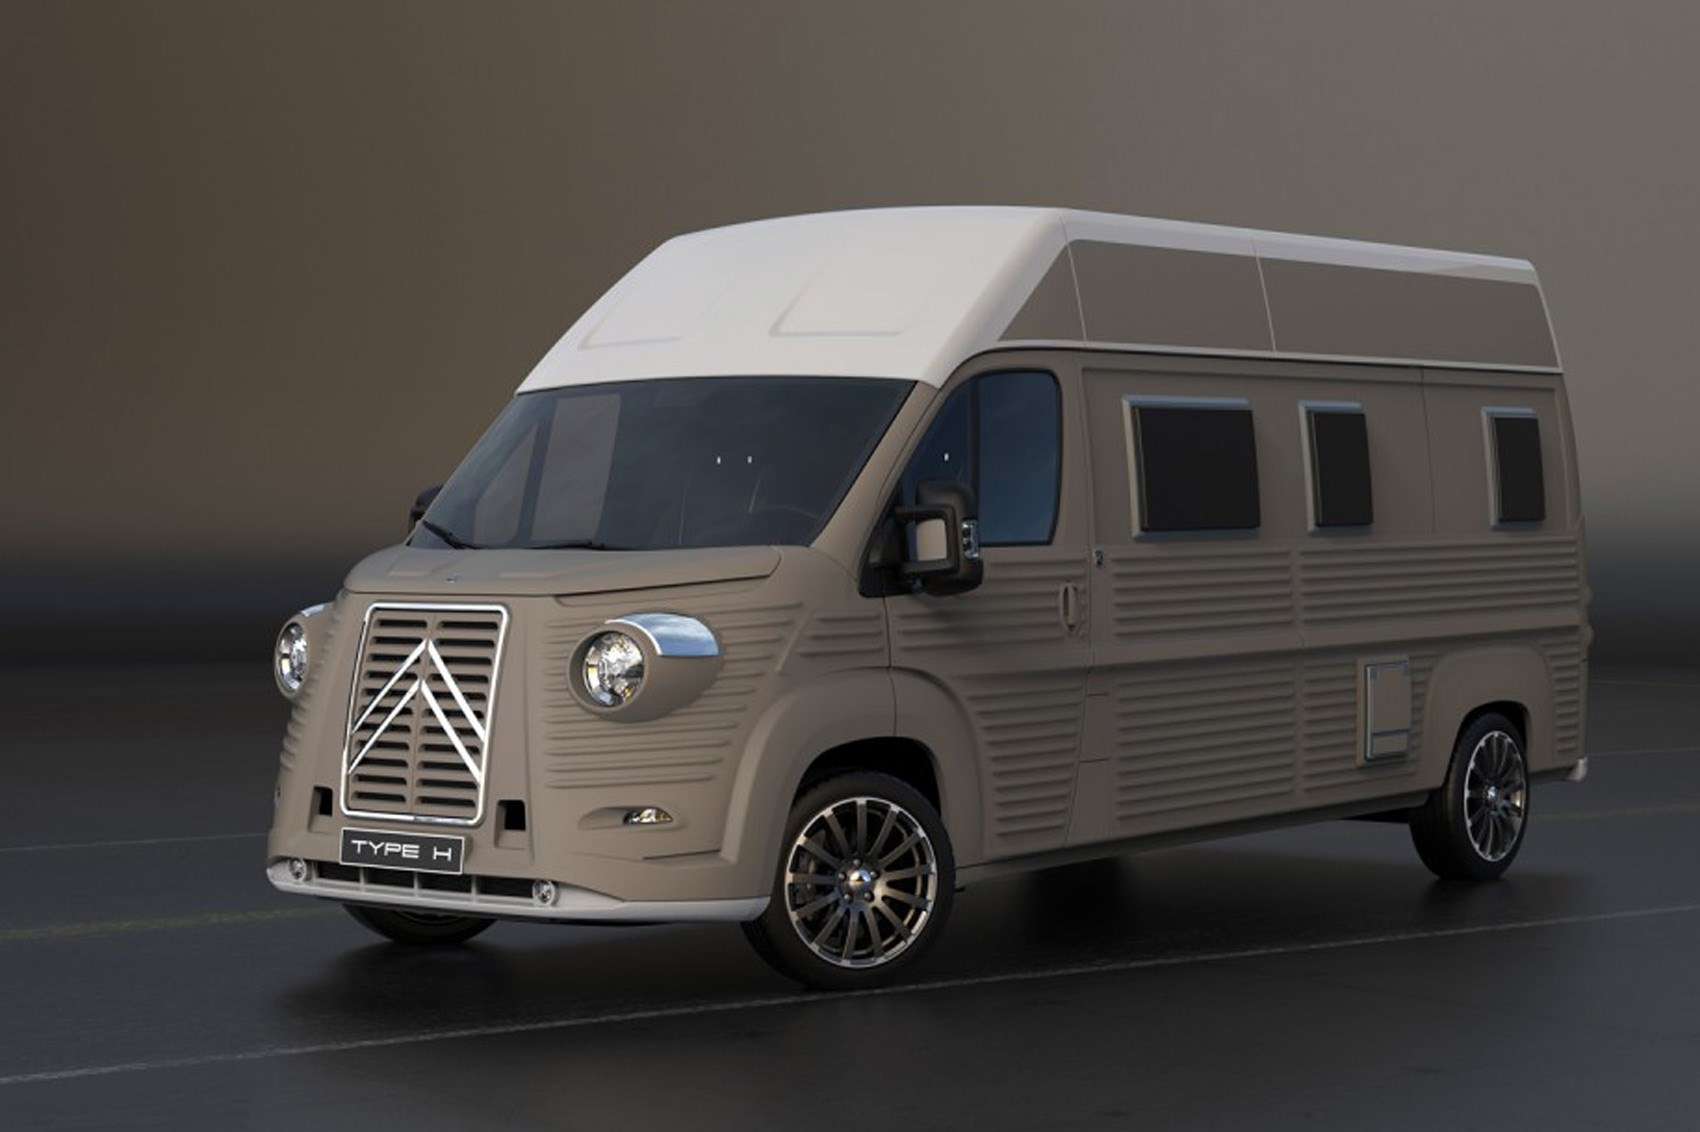 Volvo Camper Van Best Car Models 2019 2020 1969 Dodge Citroen Relay Transformed Into Retrotastic H By Magazine